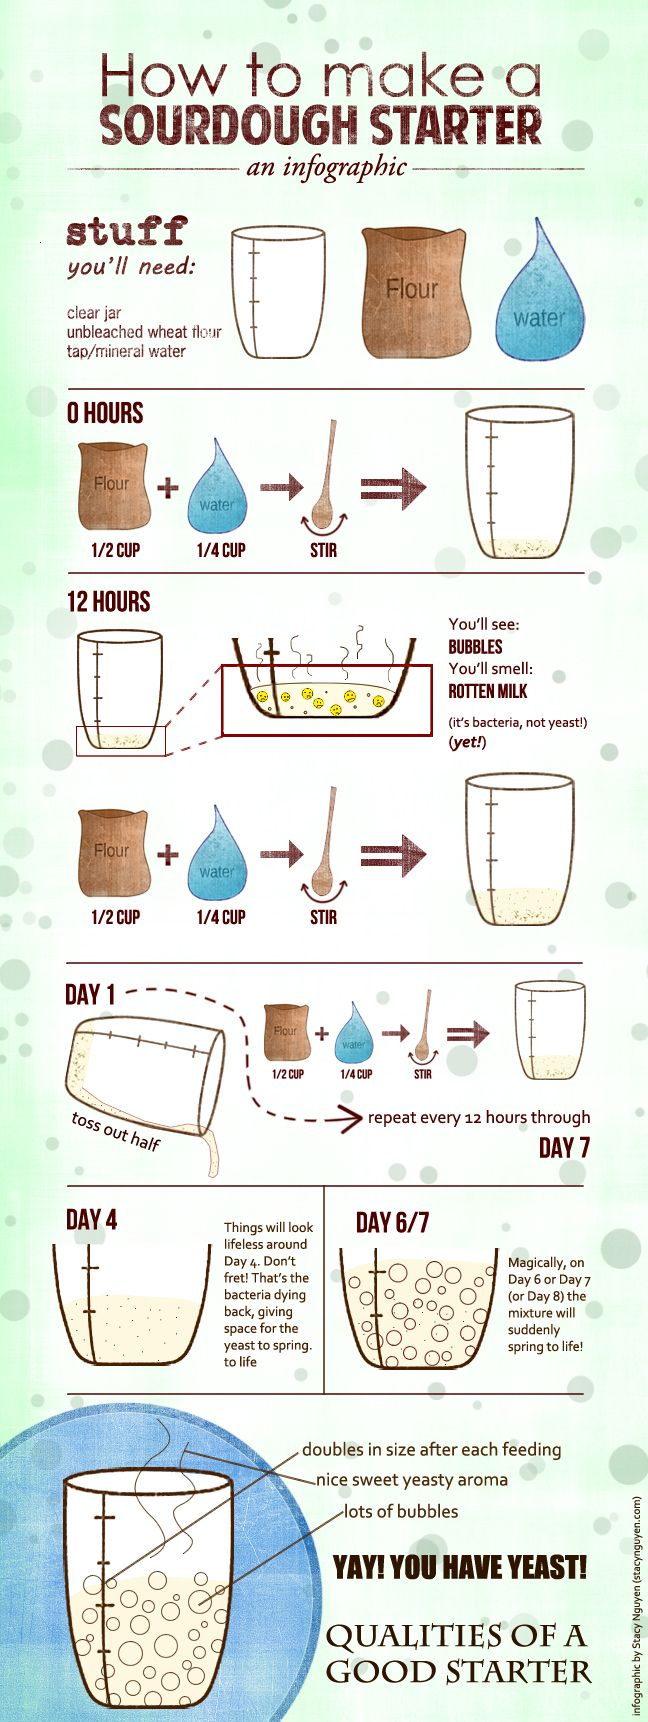 Recipe & Infographic: How to Make a Sourdough Yeast Starter and No-Knead Sourdough Boule - heoyeahyum.com